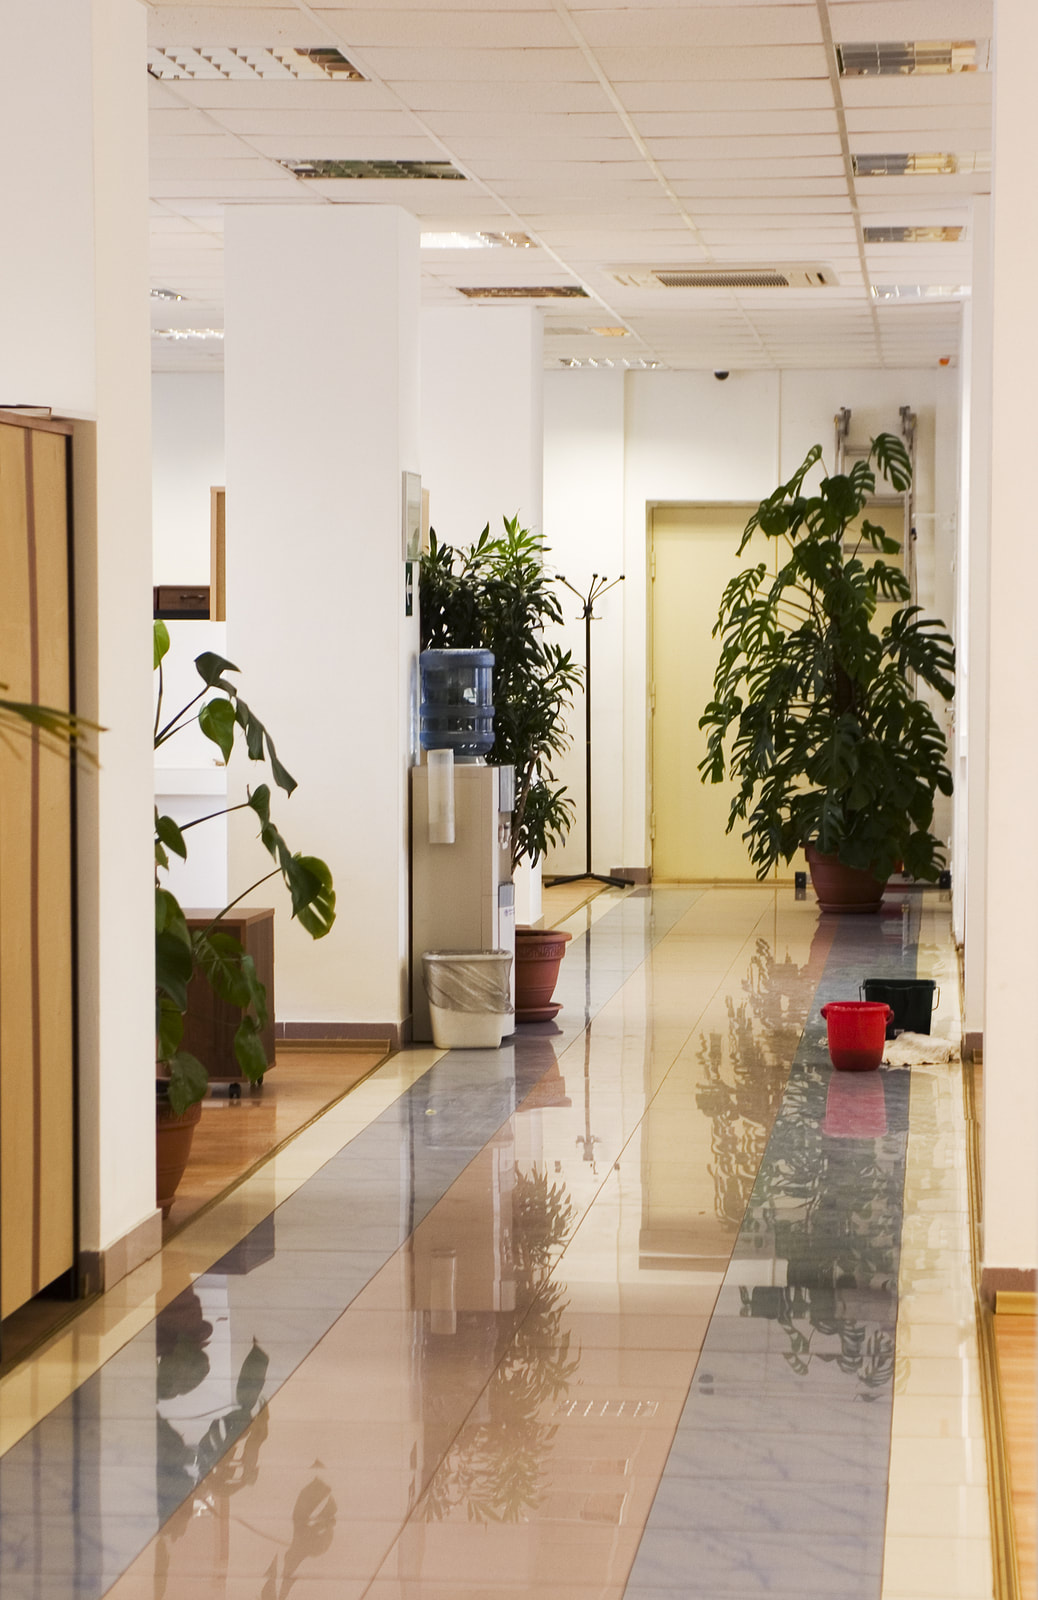 Commercial property shining after a deep janitorial clean